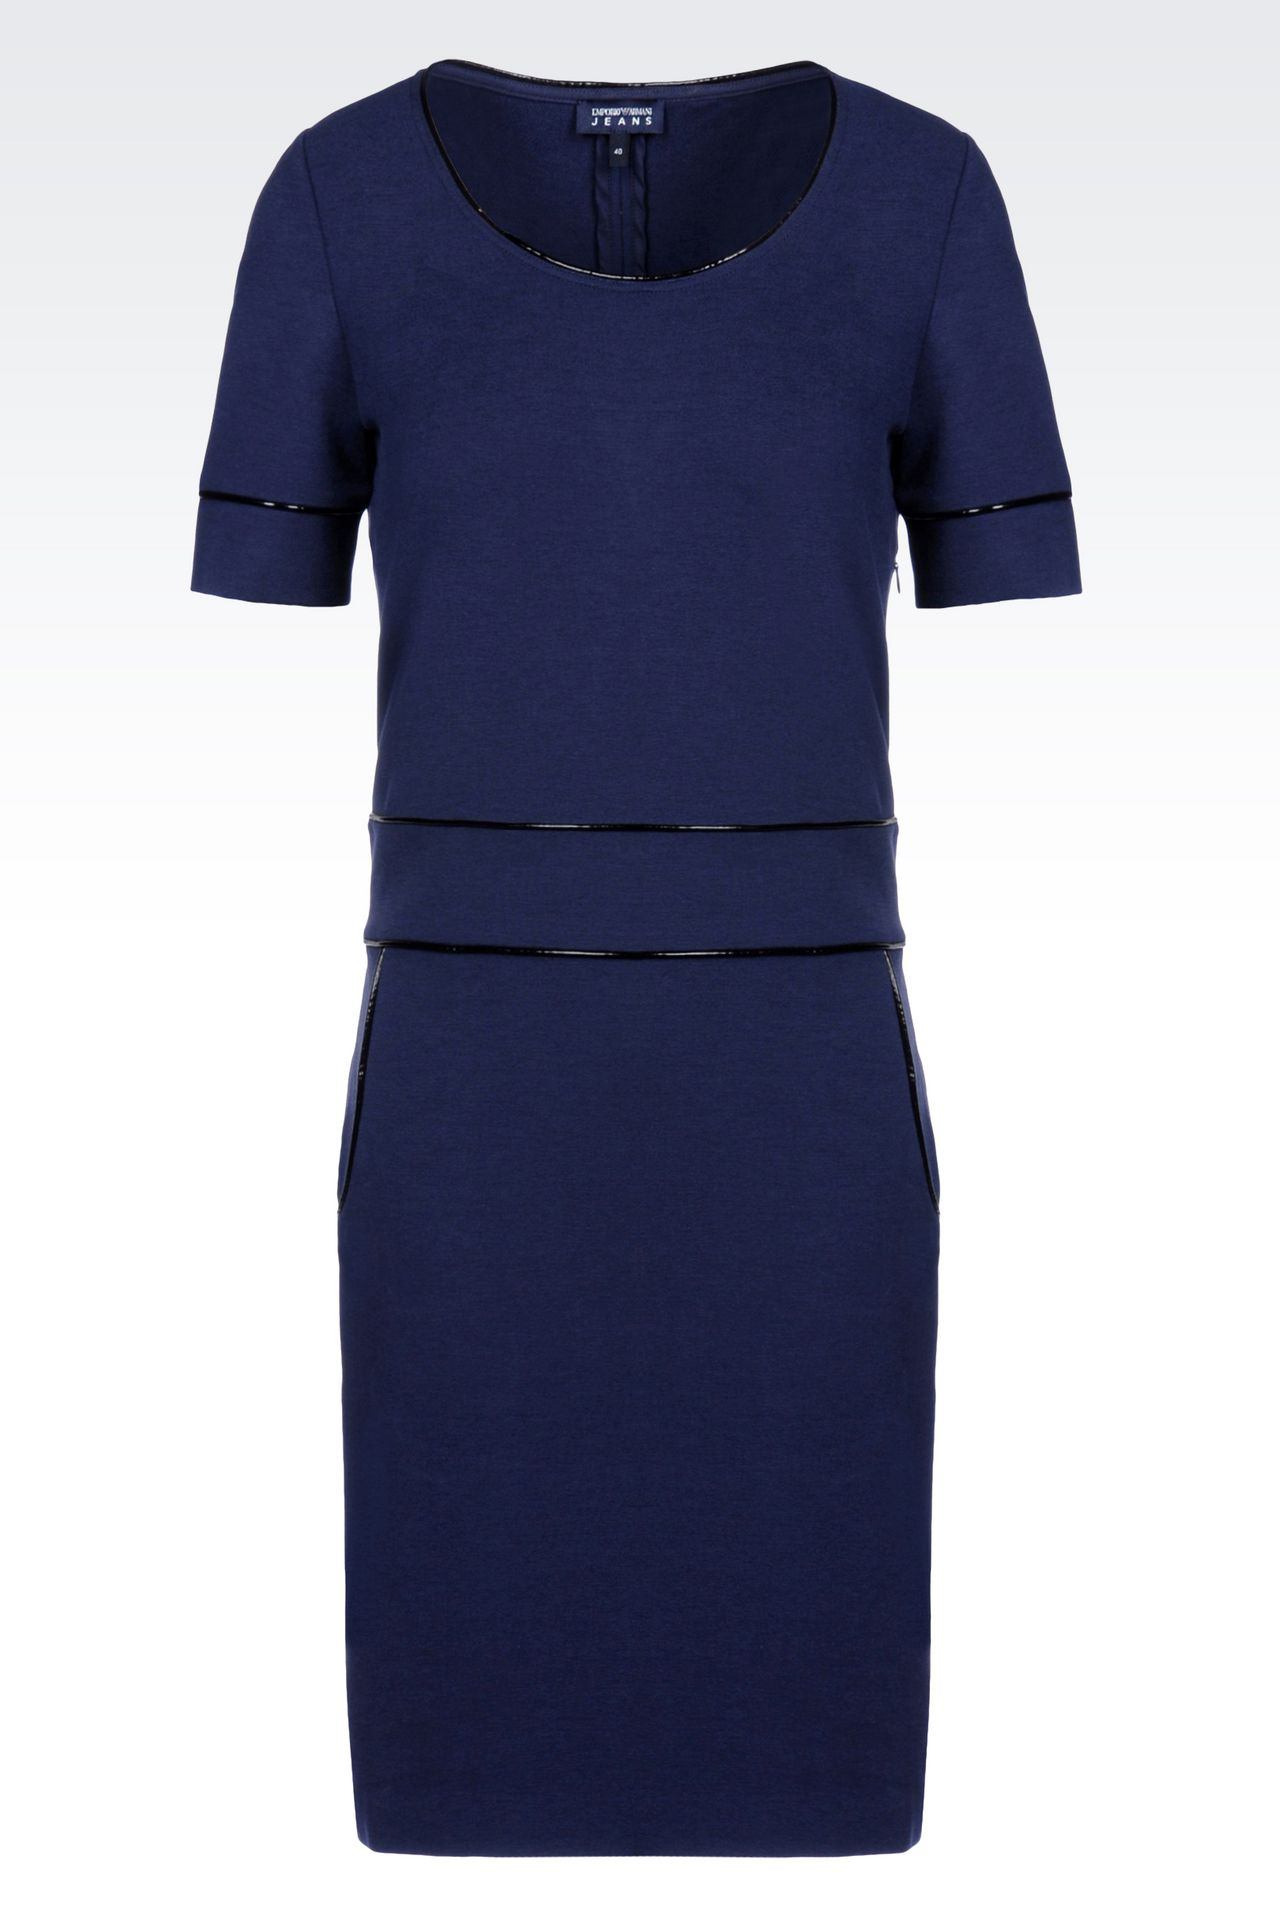 SHEATH IN MILANO RIB WITH PATENT PIPING: Jersey dresses Women by Armani - 0